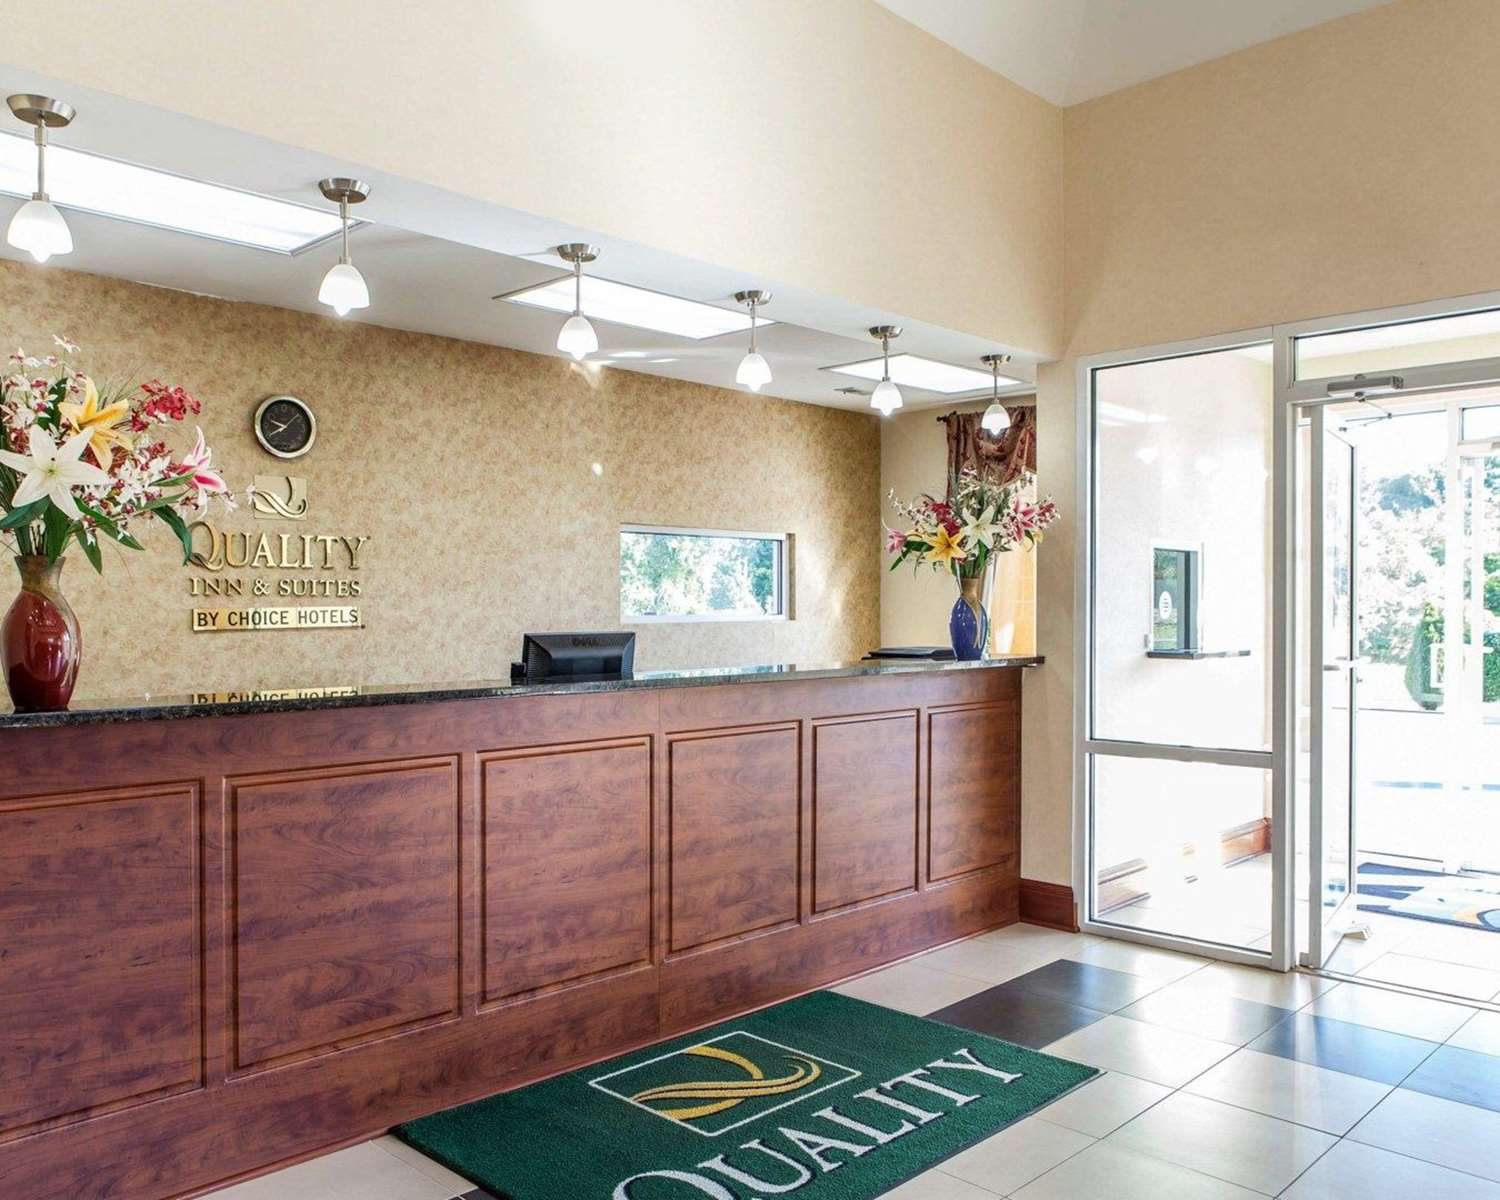 Lobby - Quality Inn & Suites Cartersville